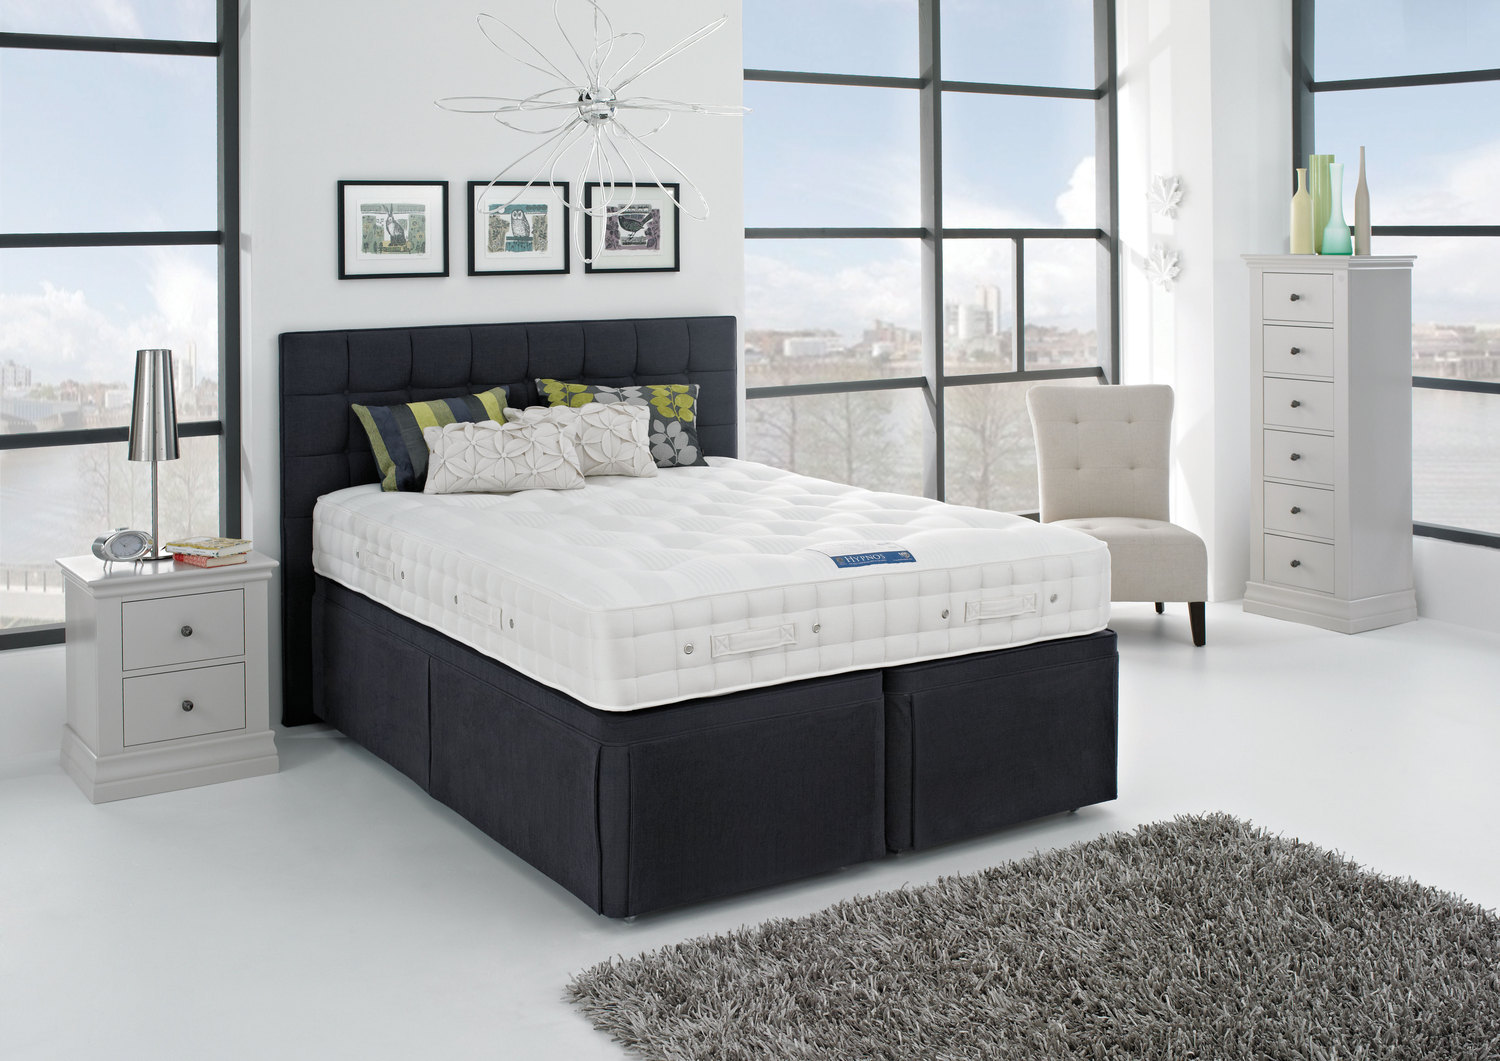 Hypnos Orthocare 10 Divan Bed Extra Firm From